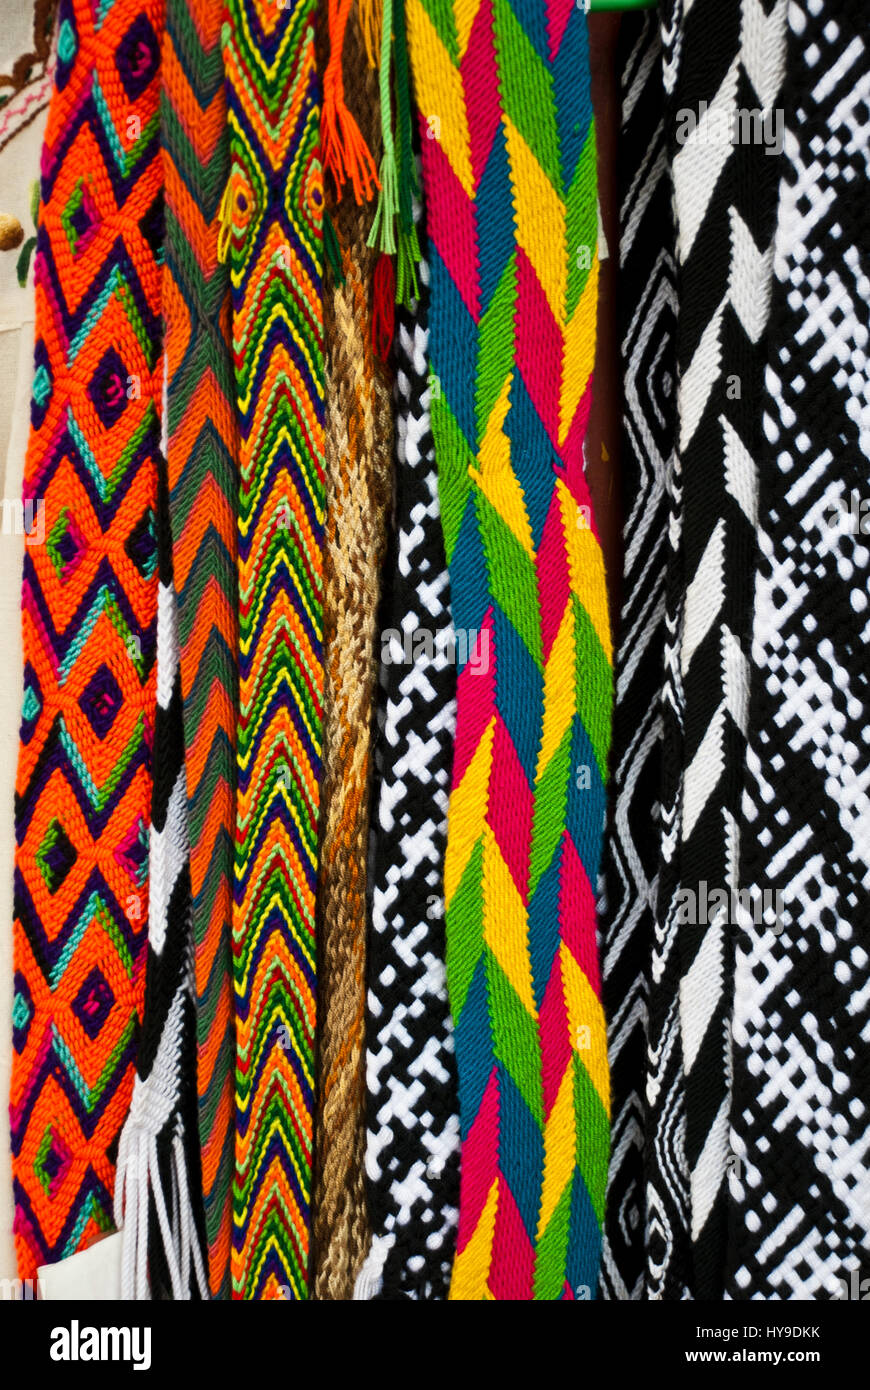 Accessories - Woven Belts - Textiles of Mexico - Craft and Indigenous Textiles - Stock Image